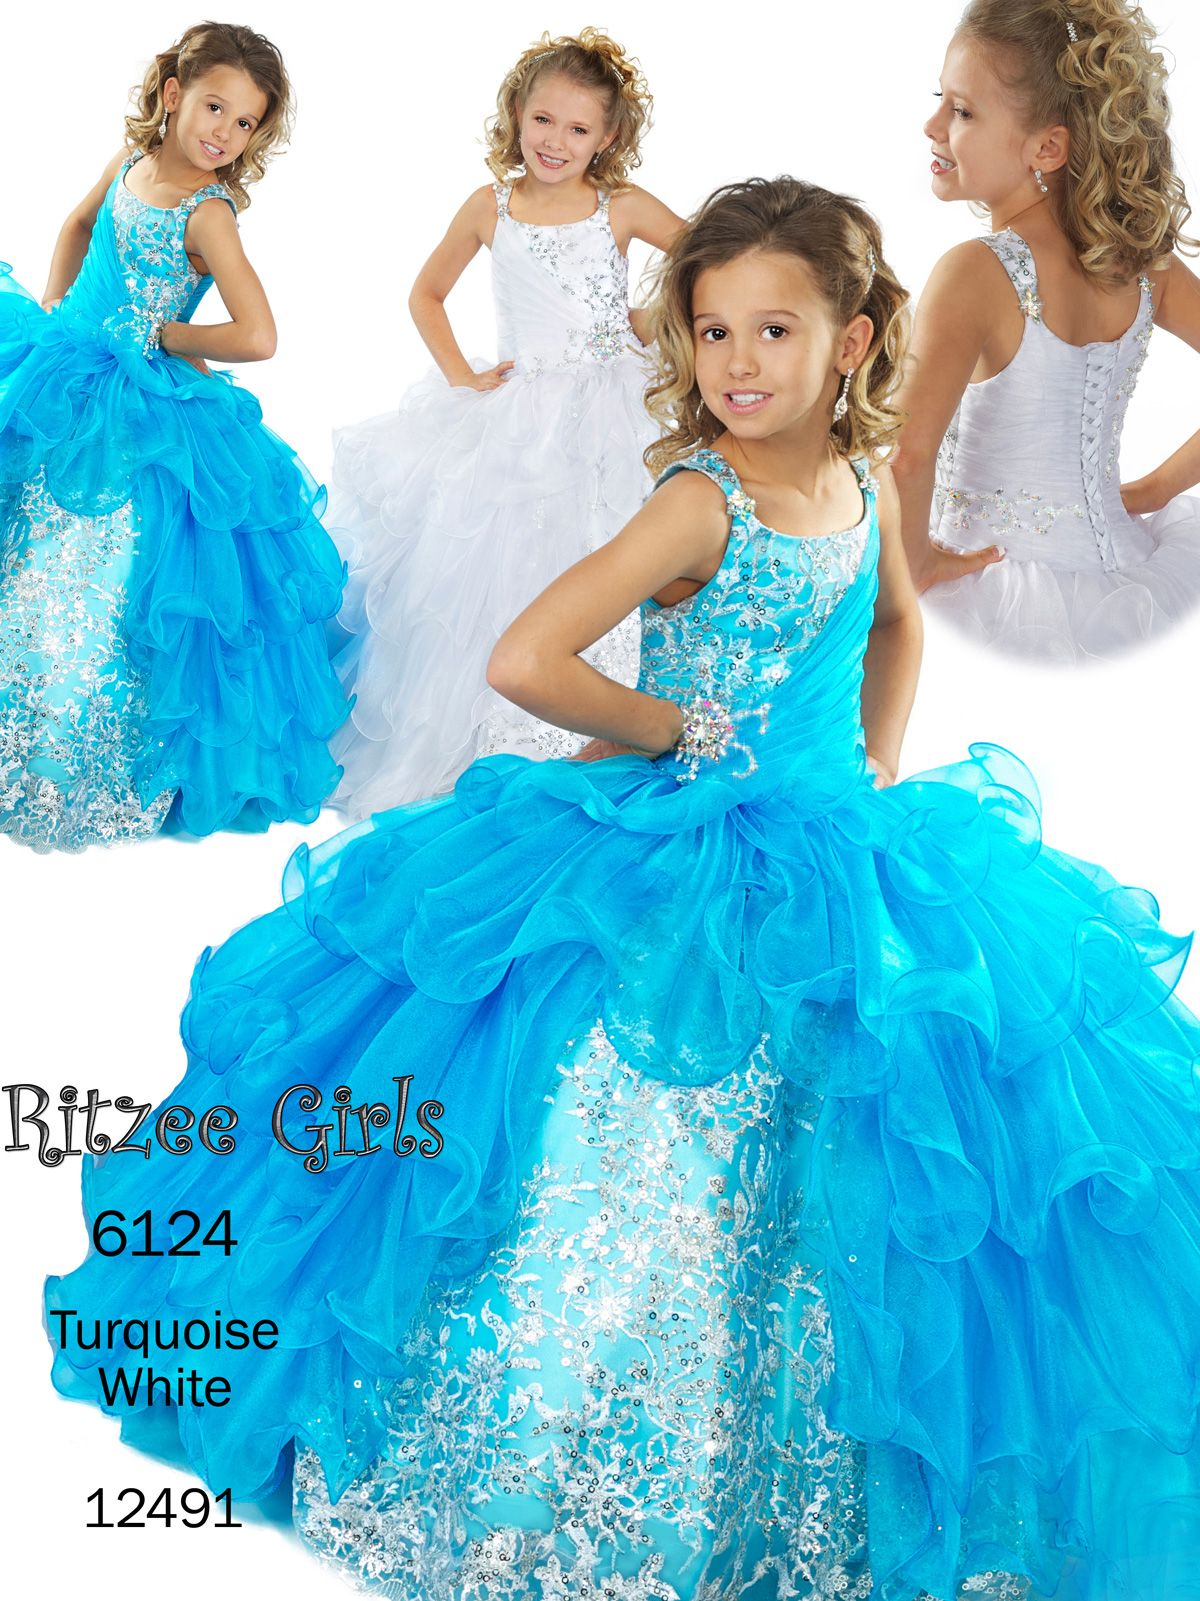 1959452b0491 Luxurious sequins/tulle pageant dress Ritzee Girls 6124. The beauty of the  crown will be the perfect match for this gown full of luxury and style.